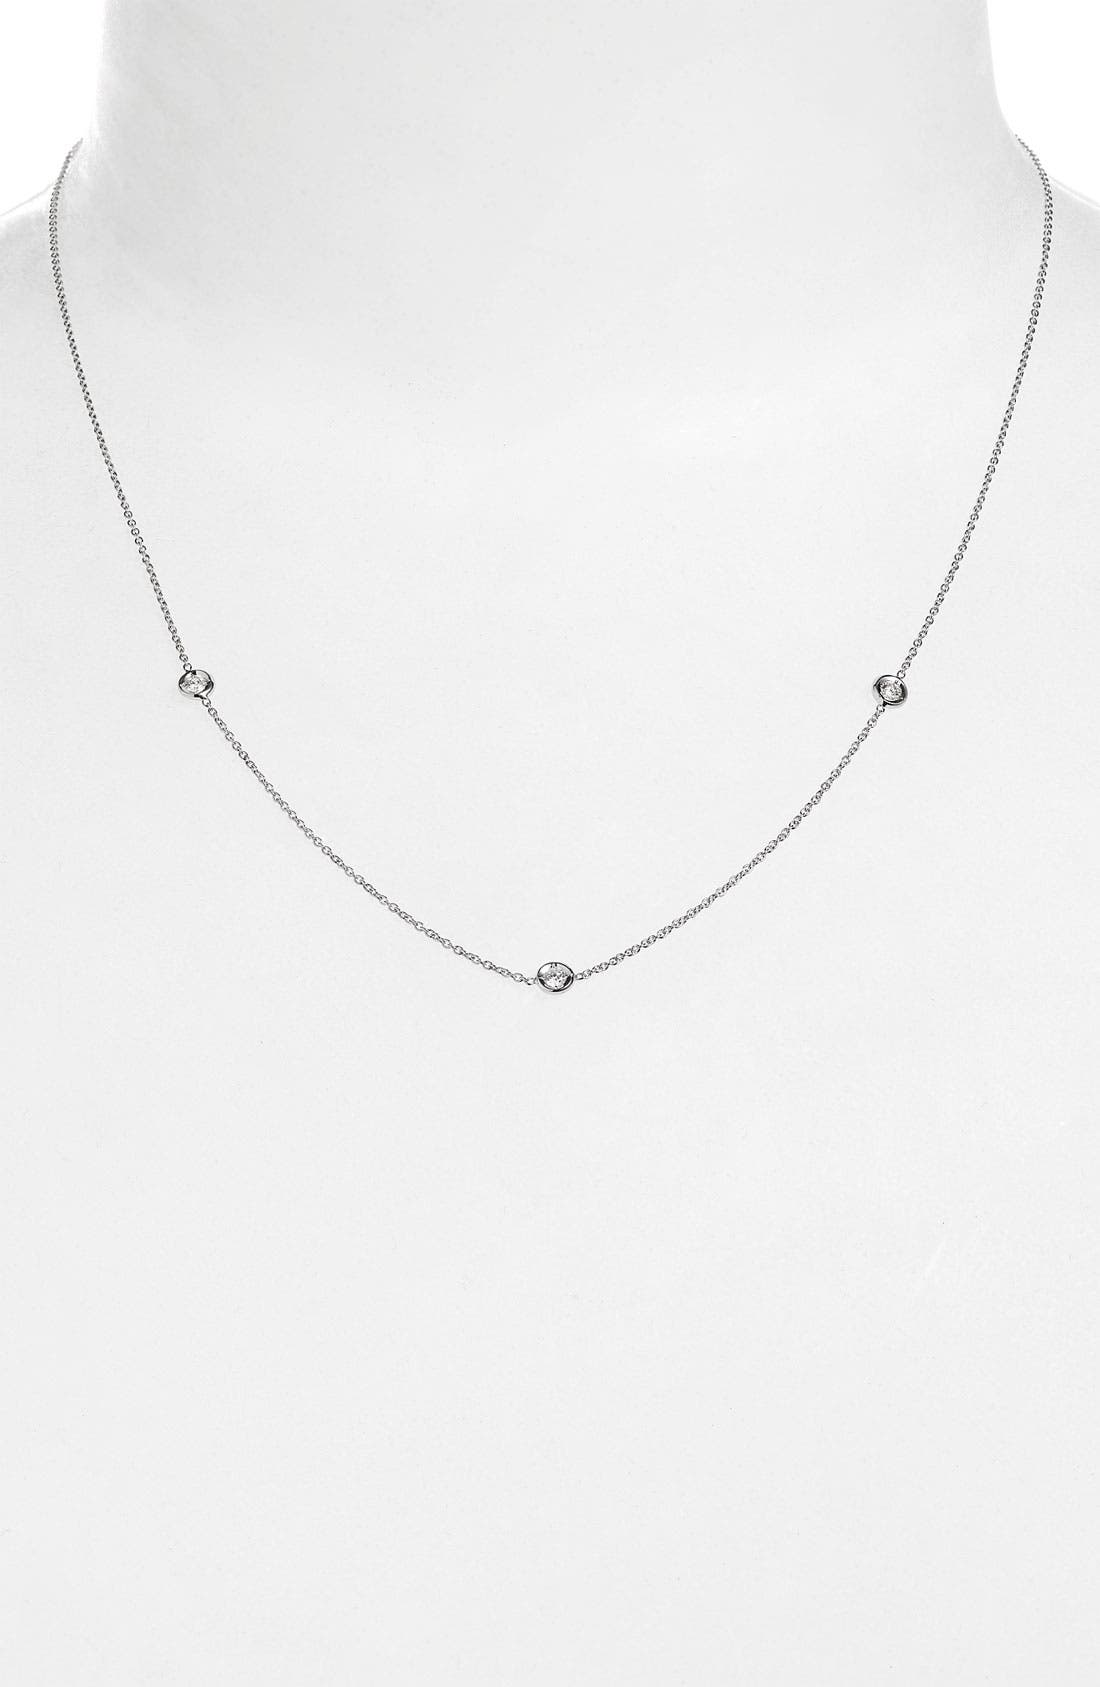 Alternate Image 1 Selected - Roberto Coin Diamond Station Necklace